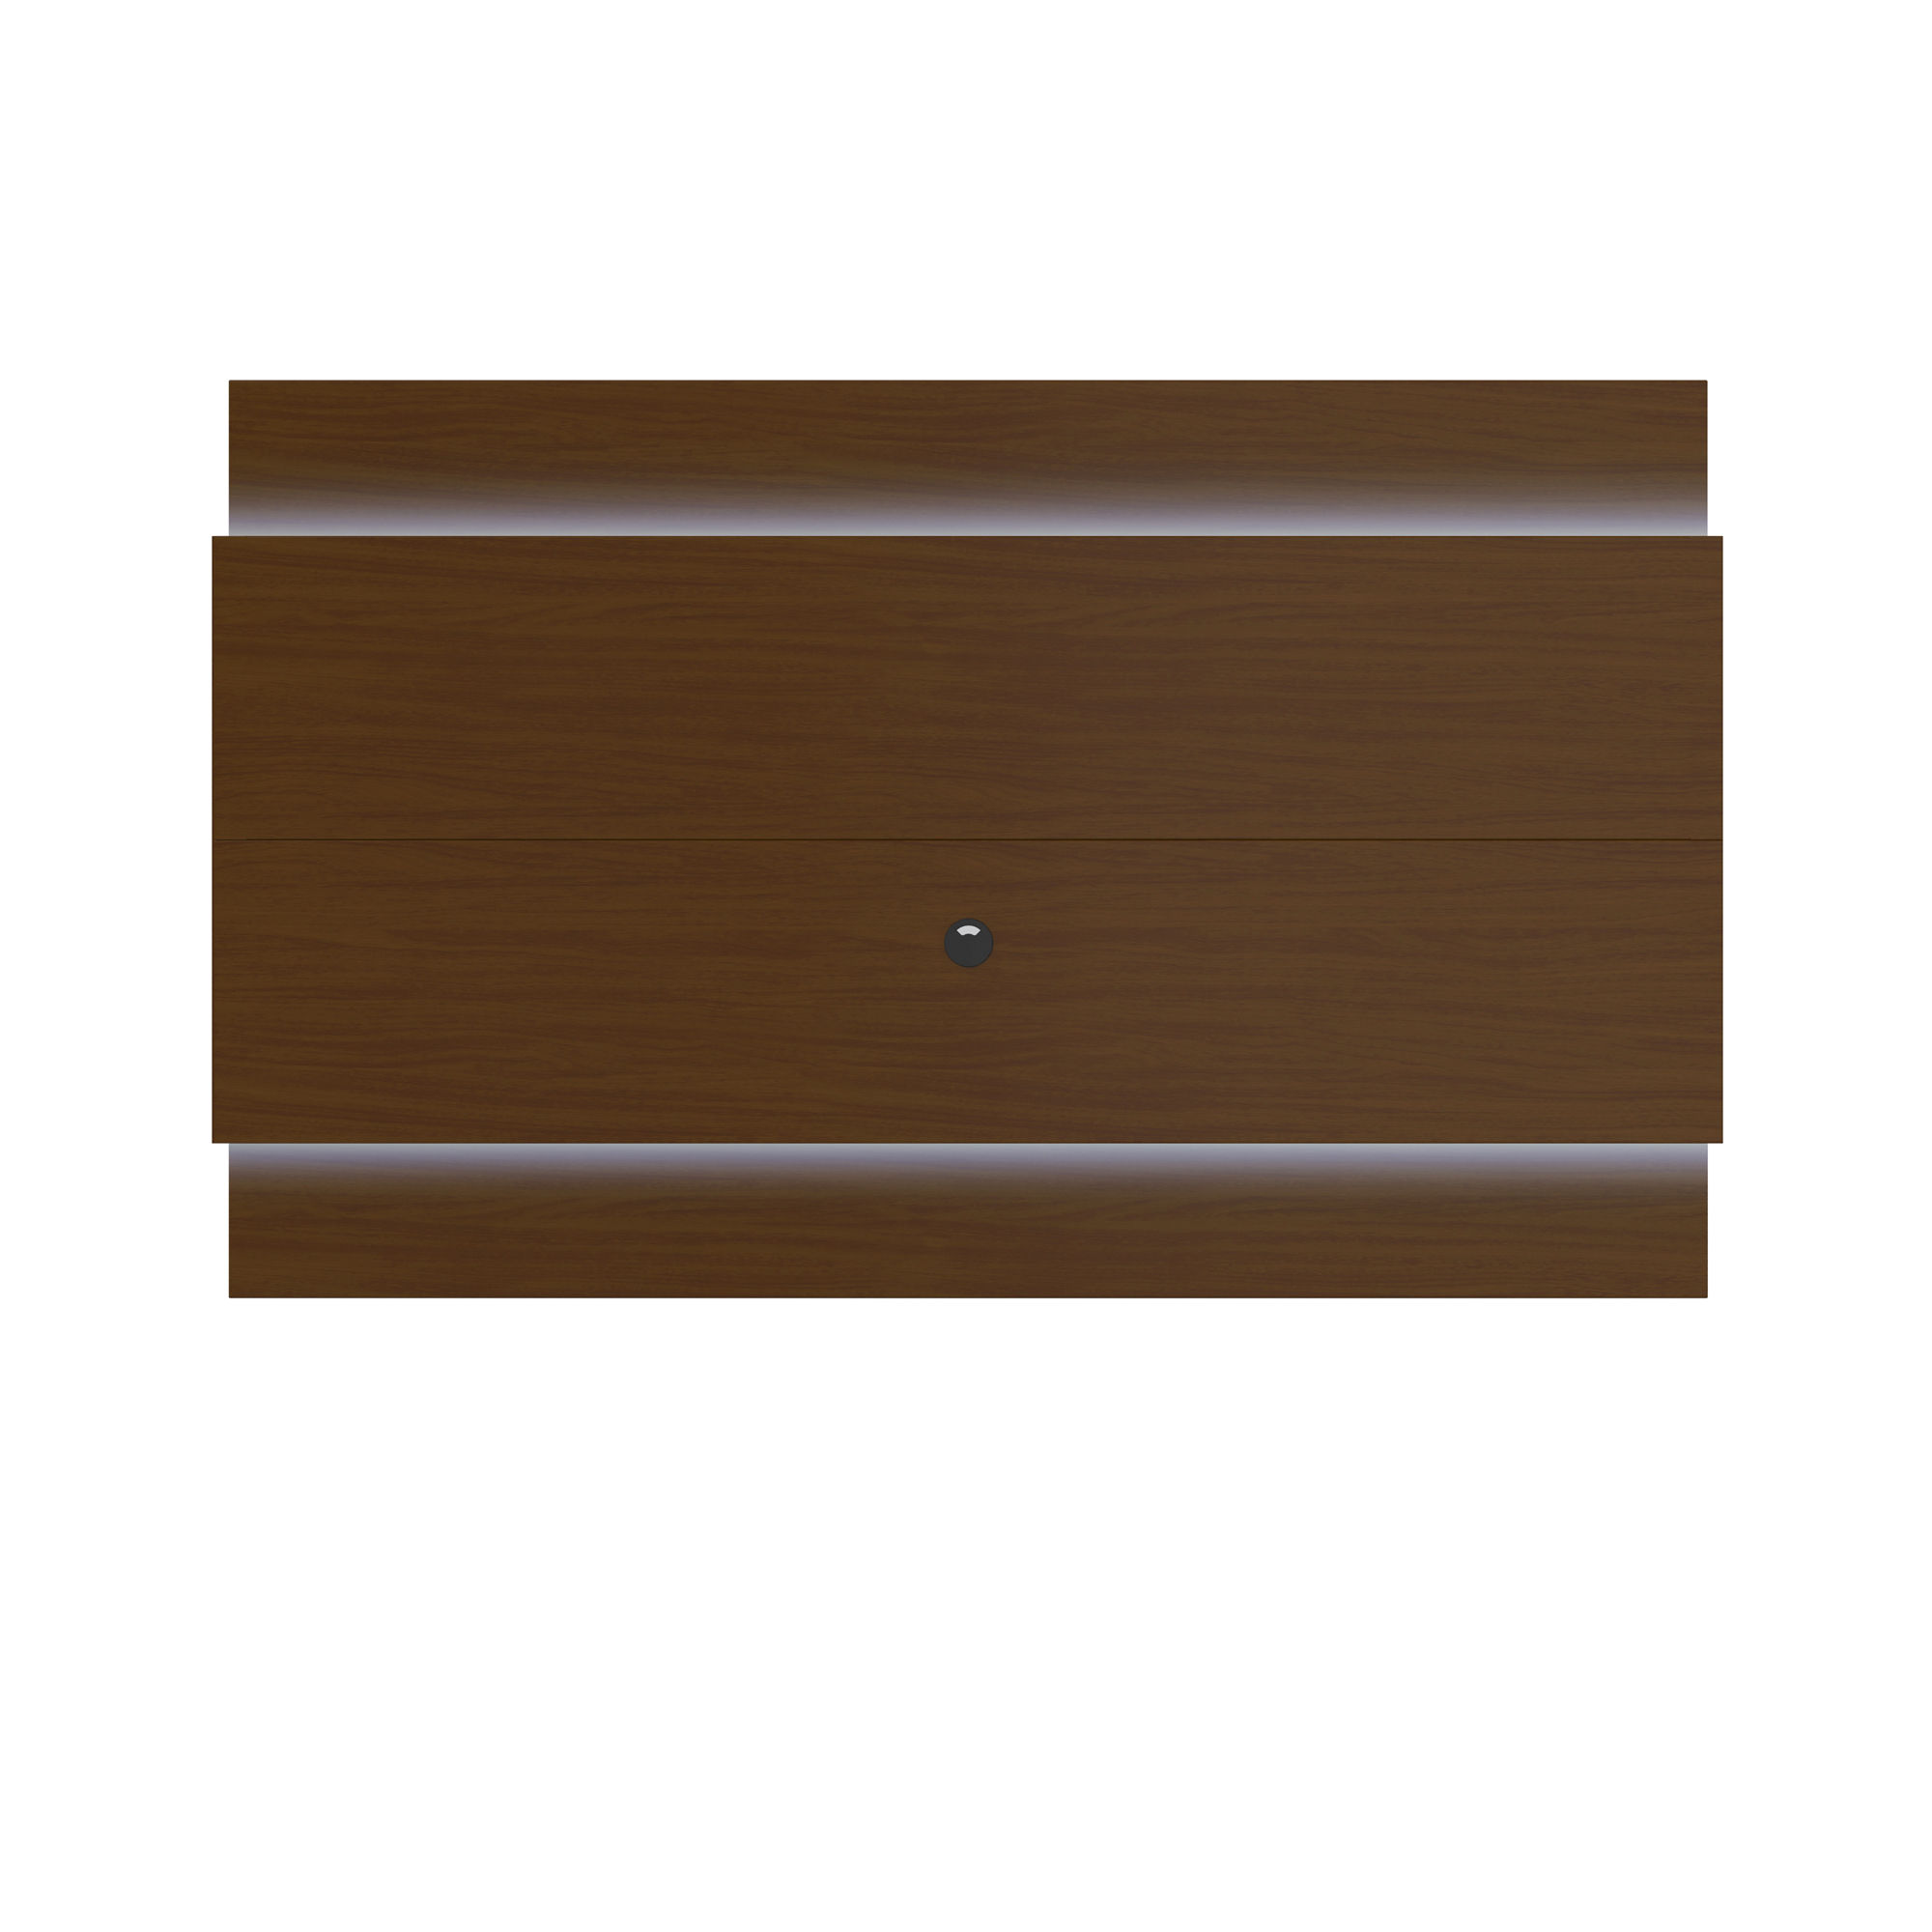 Home Roots Nut Brown Floating Wall Tv Panel 22 With Led Lights